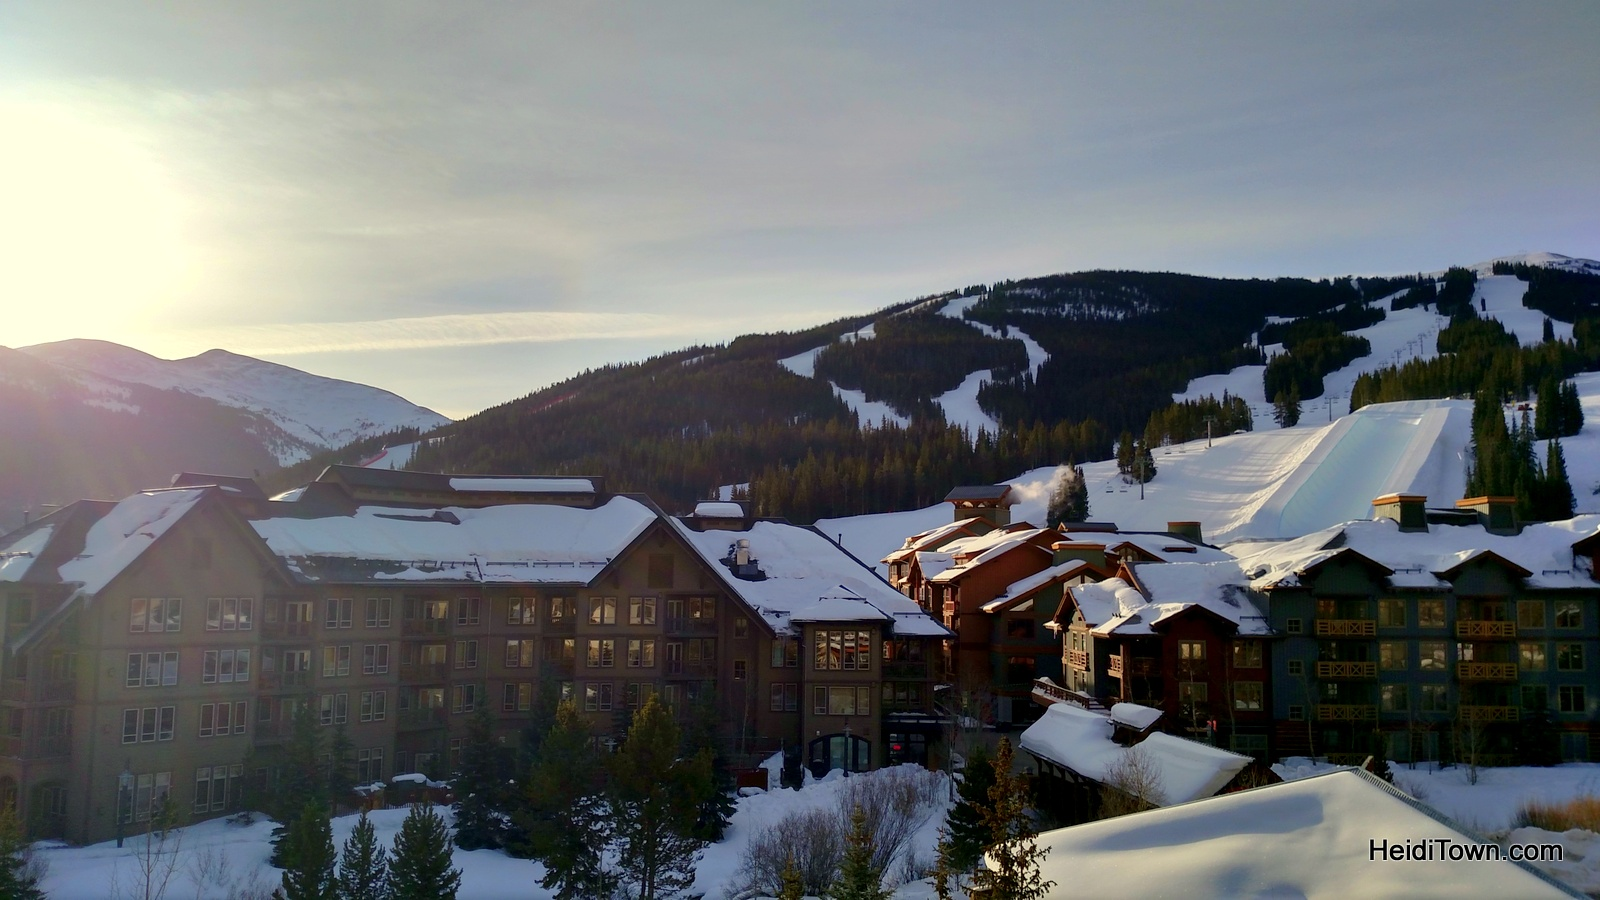 The view from our Passage Point condo in Copper Mountain. HeidiTown.com